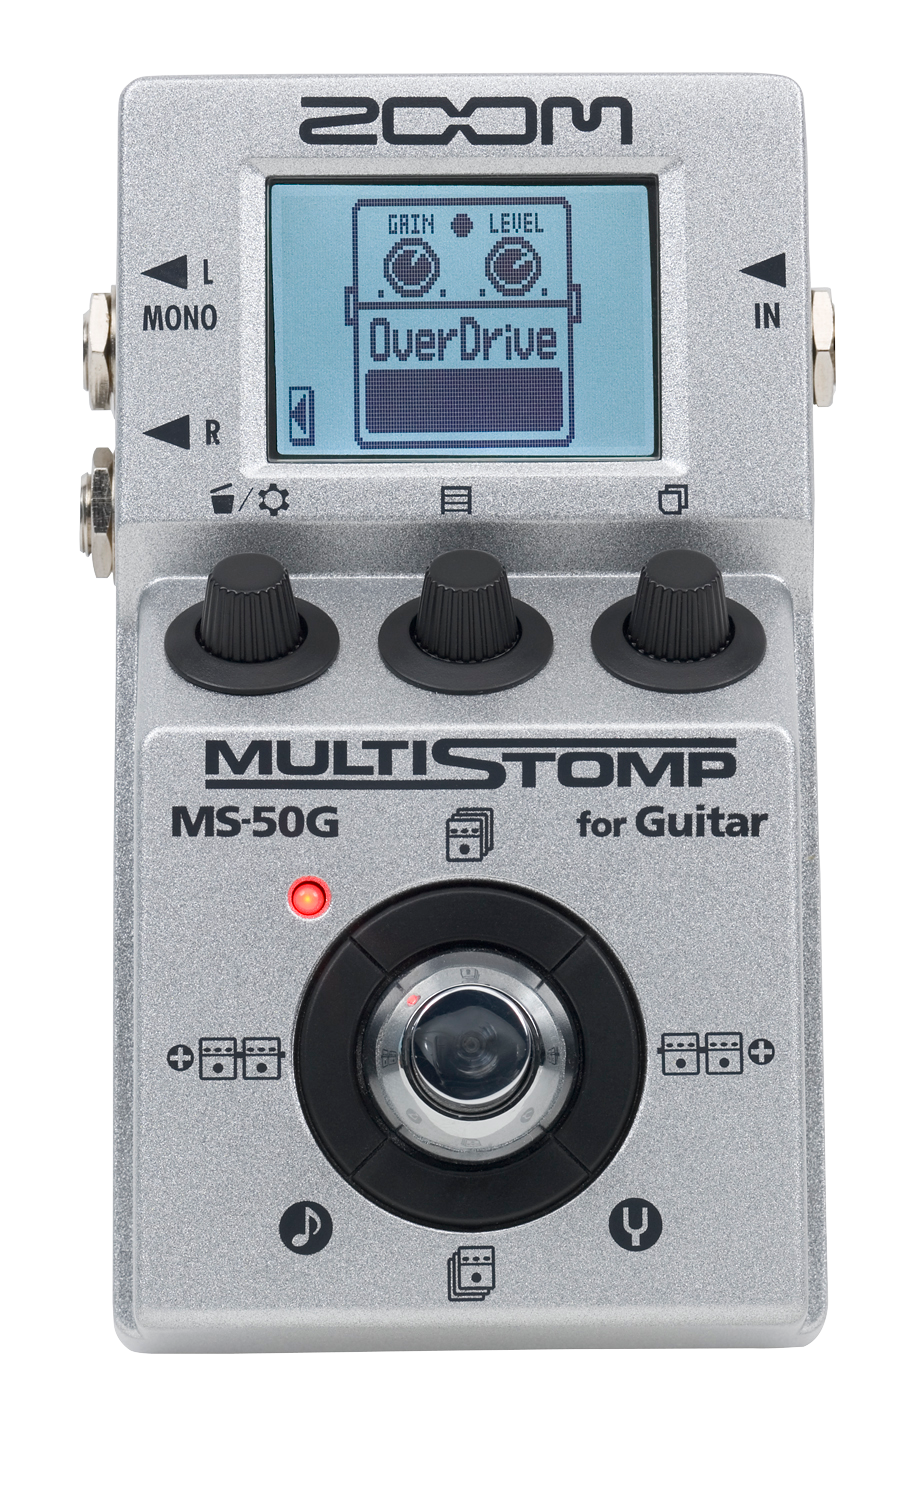 MS-50G MultiStomp Guitar Pedal   Zoom